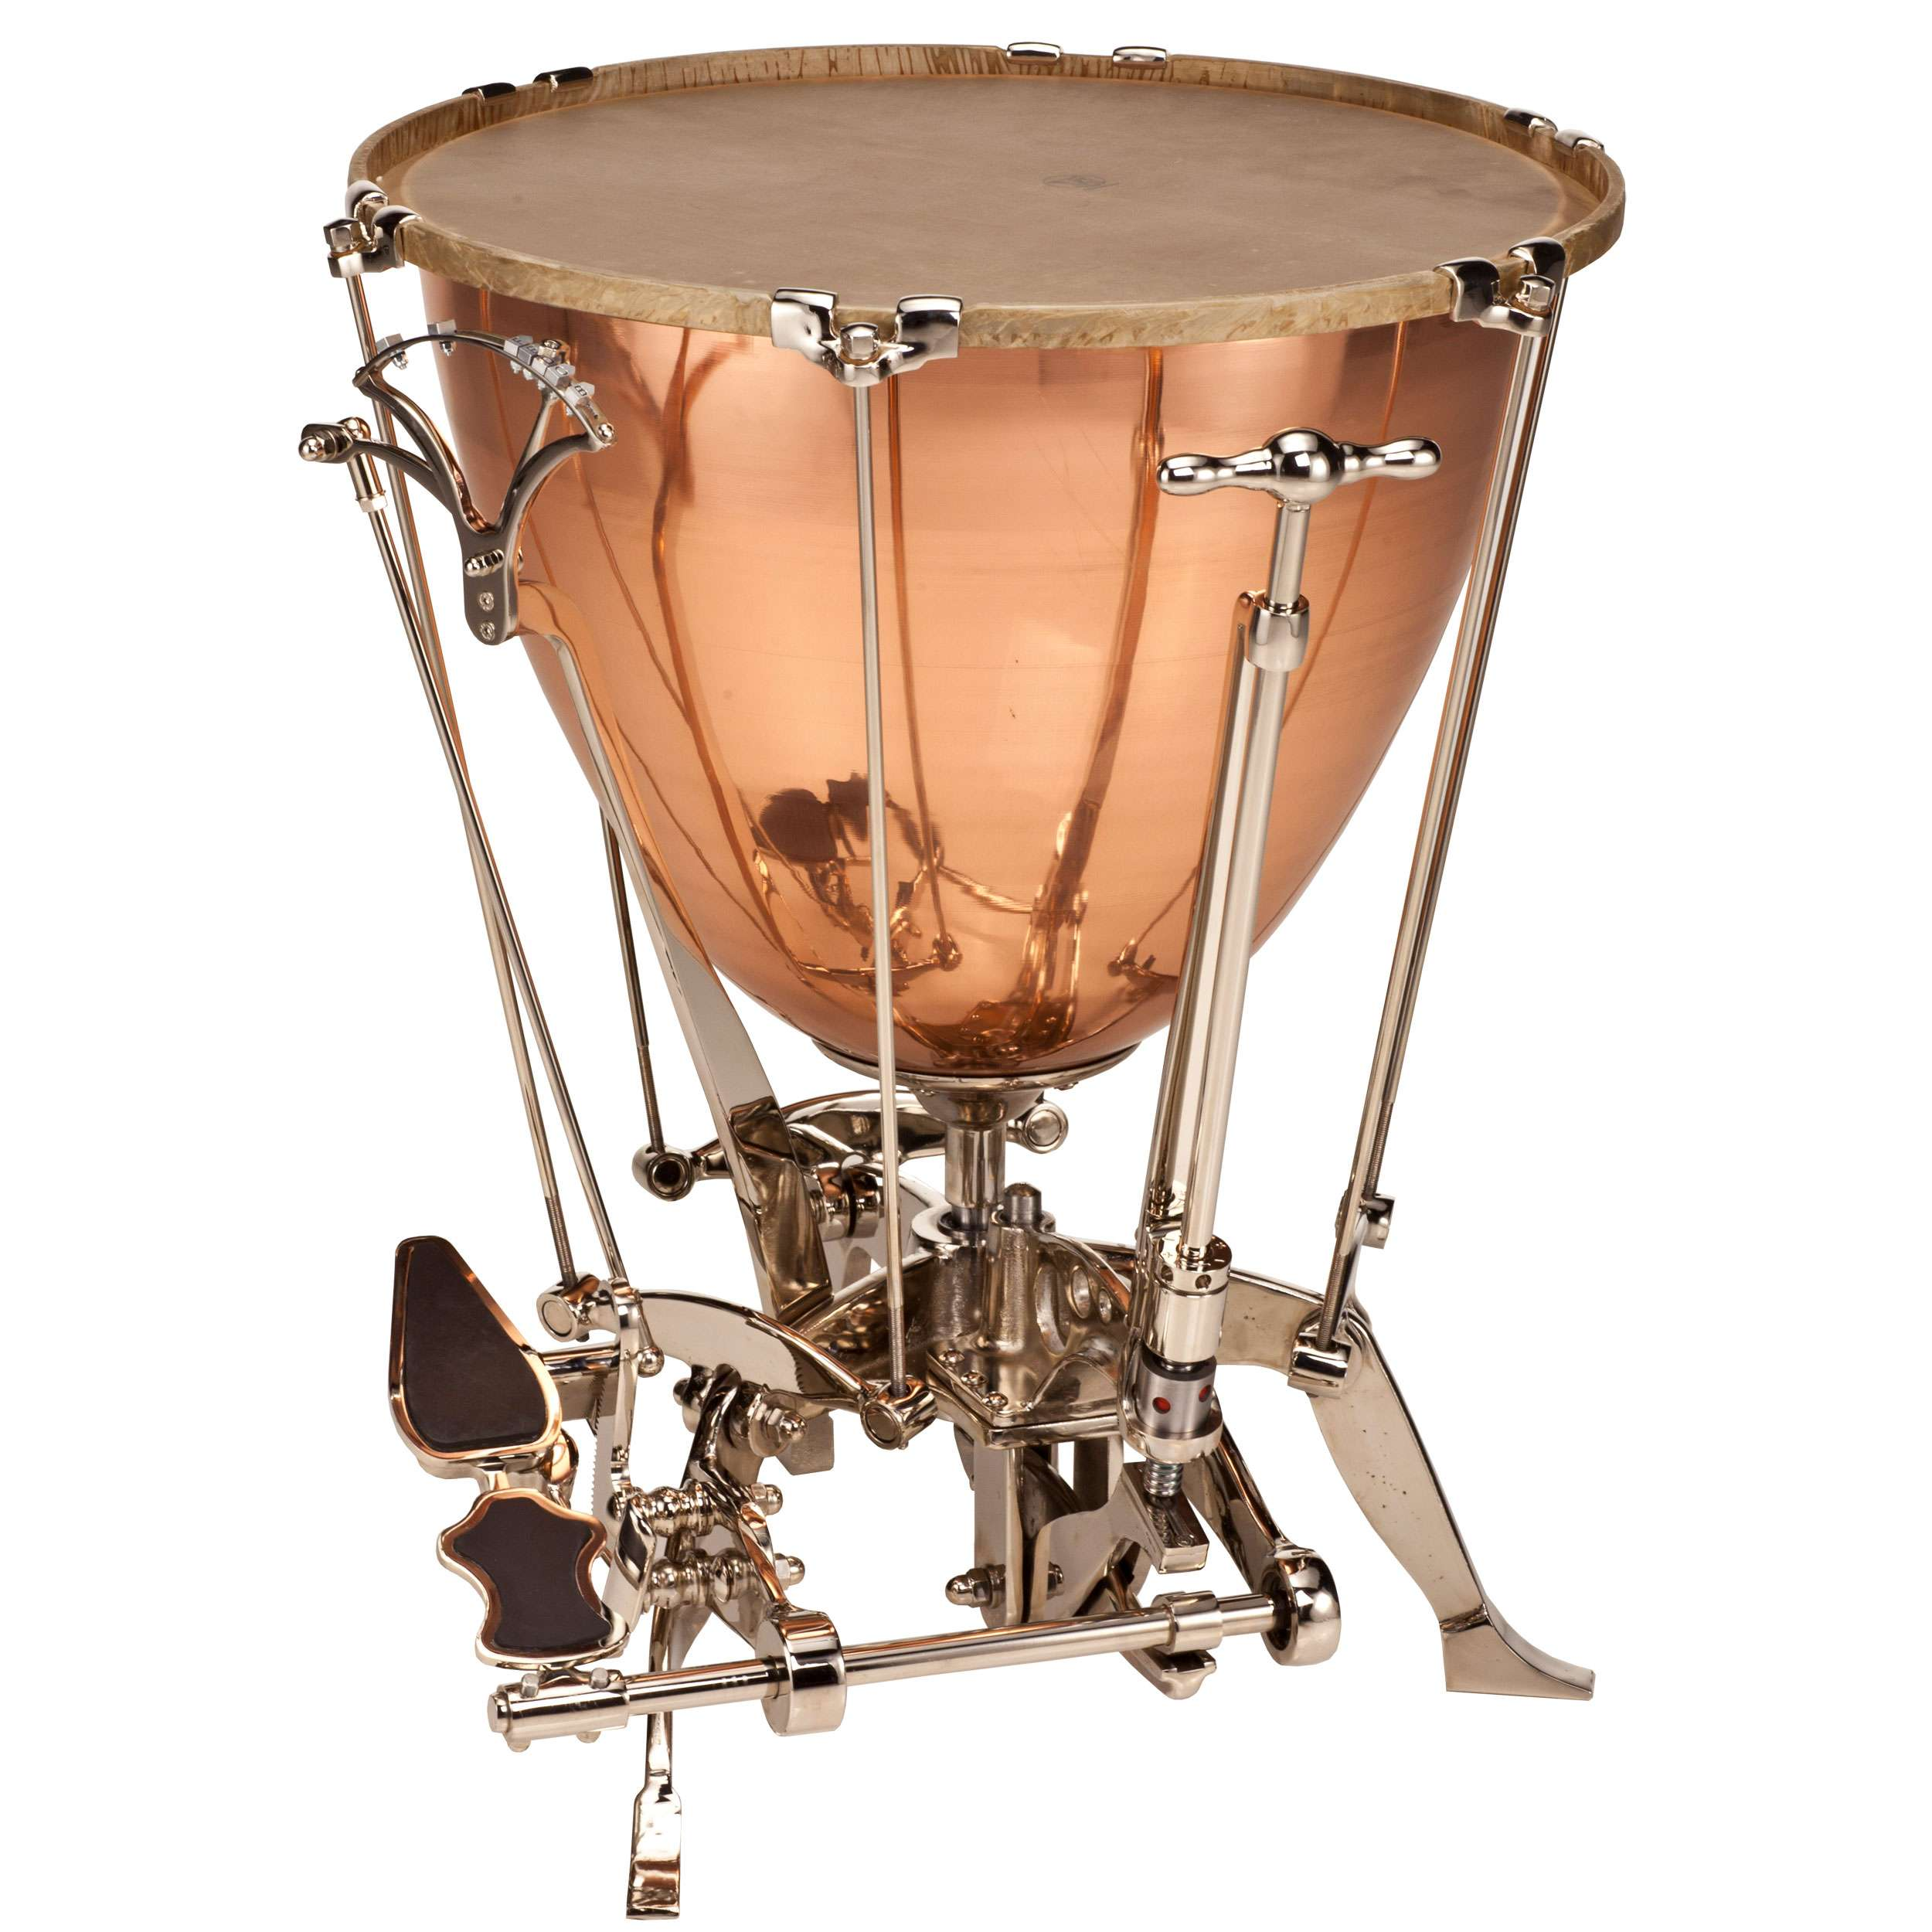 "Adams 25"" Schnellar Timpani with Kurbel (Crank) and Calfskin Head"